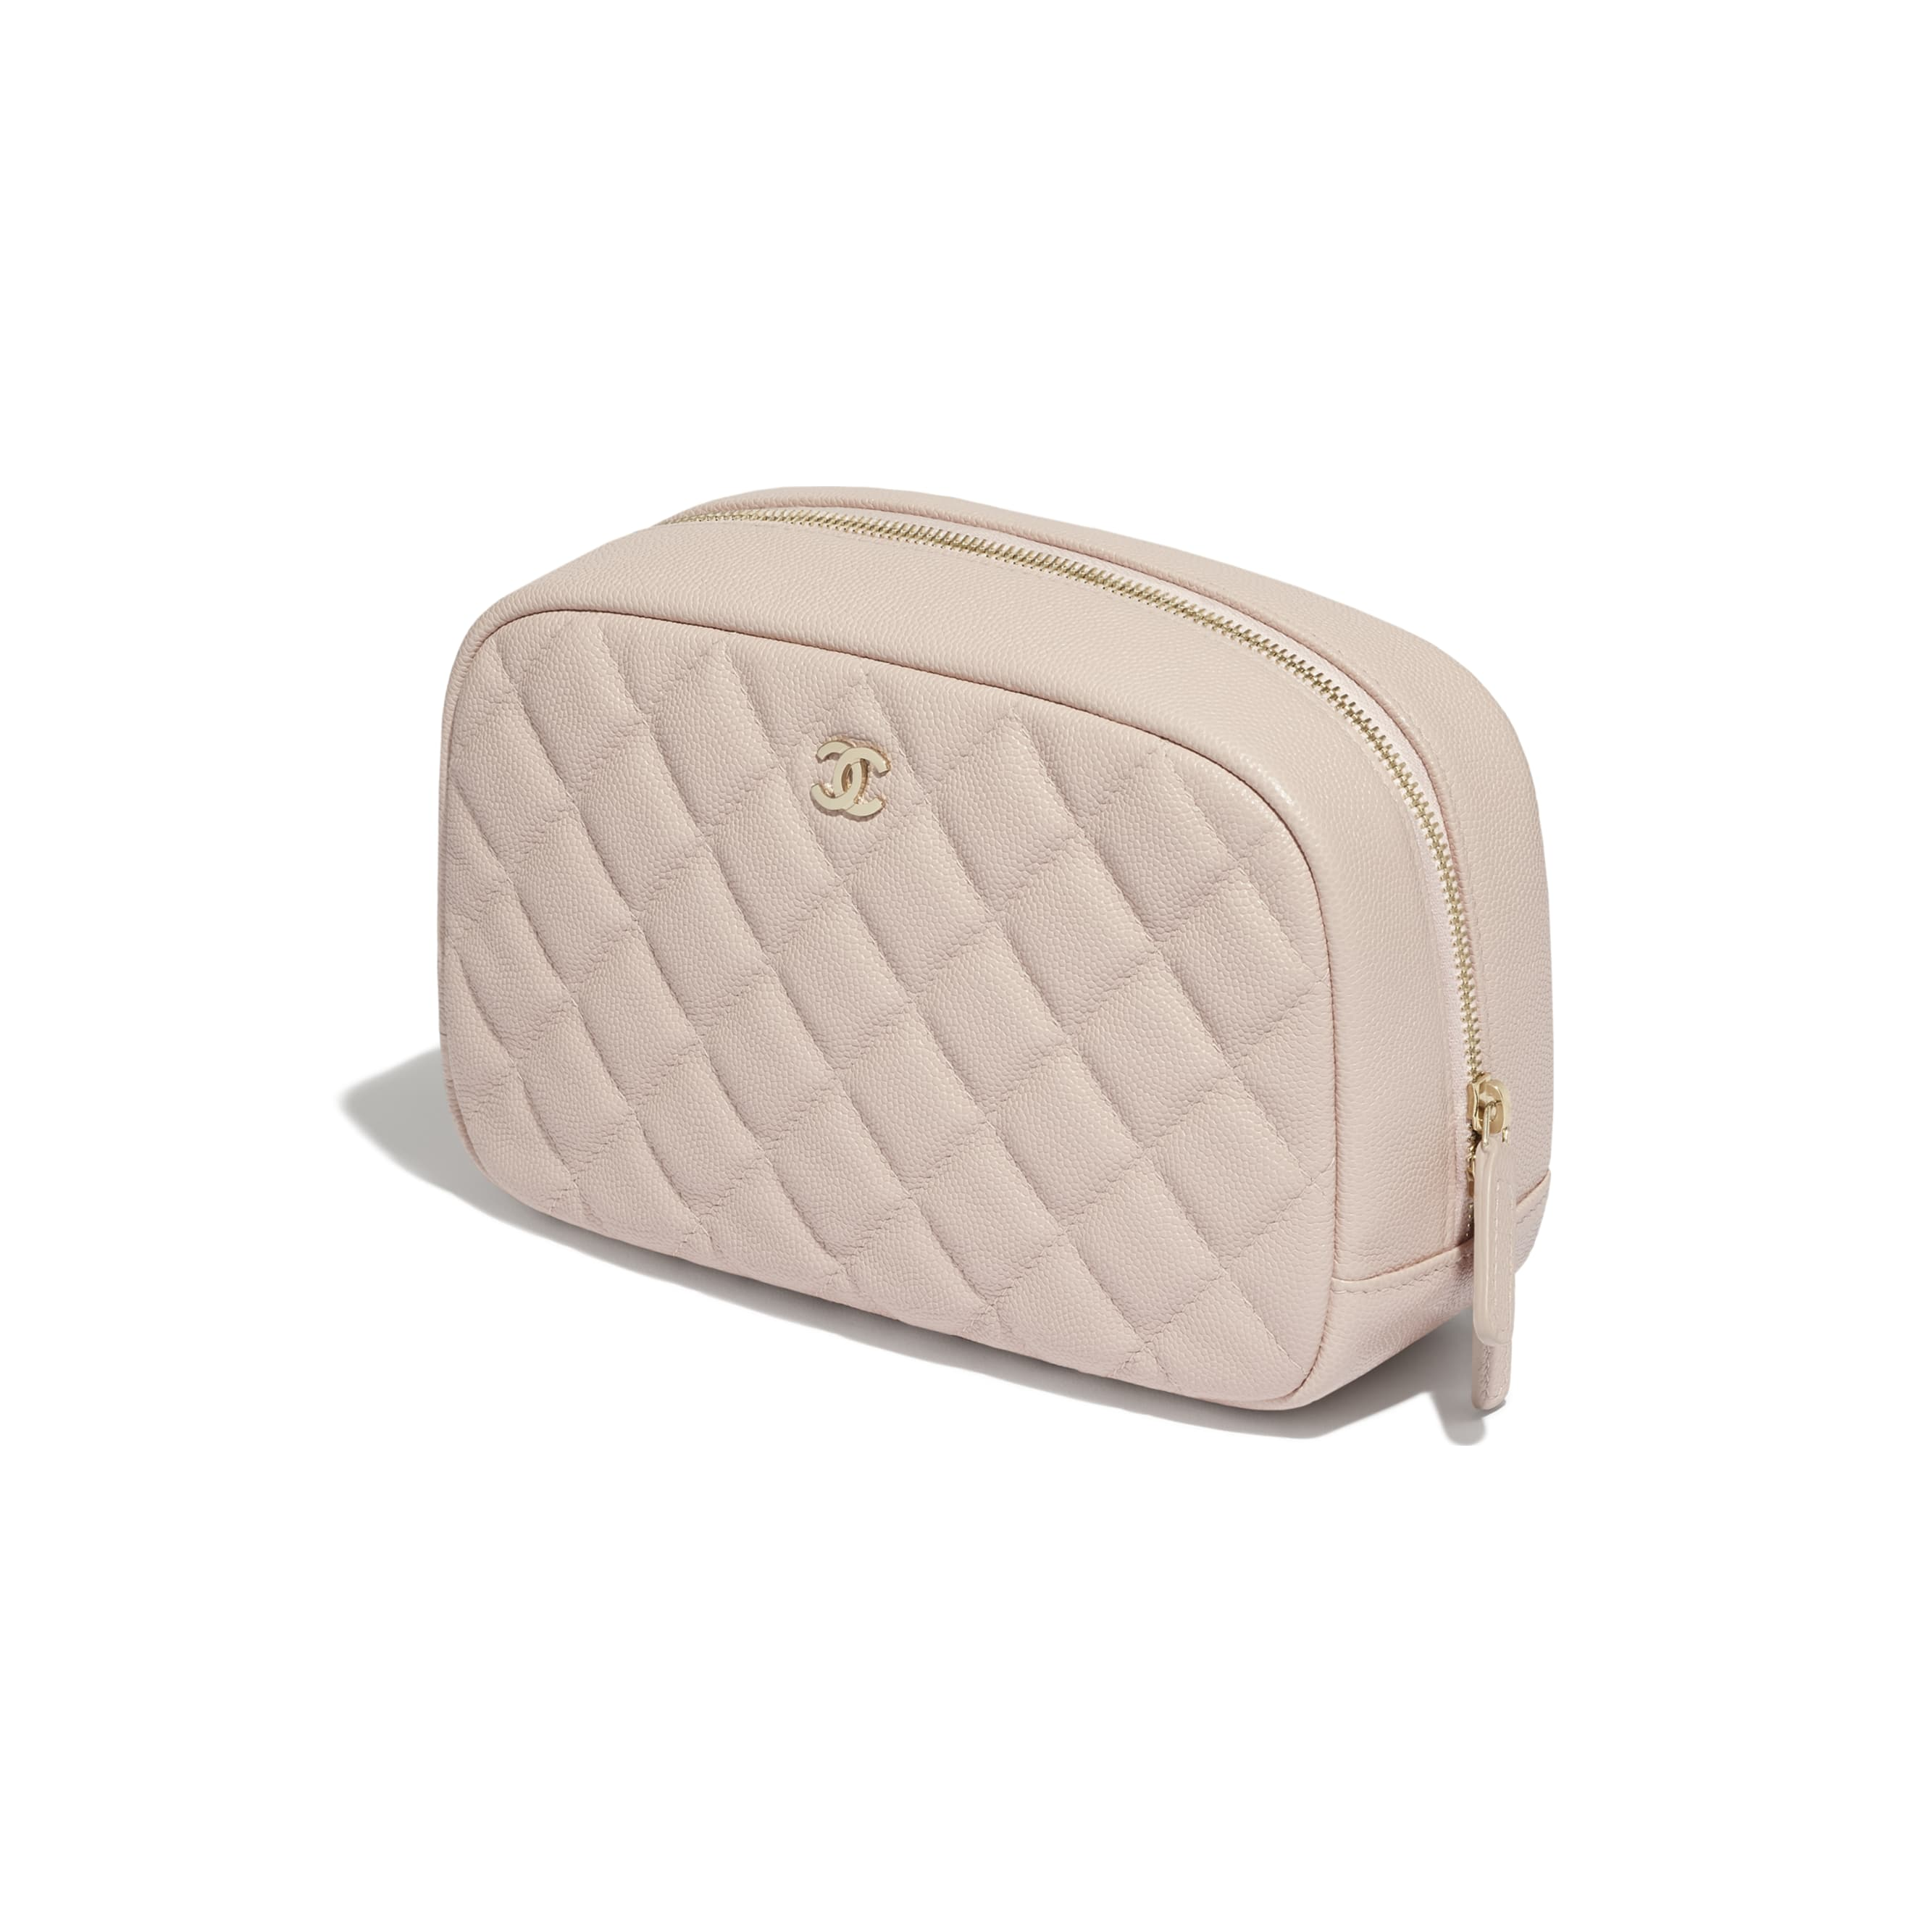 Classic Case - Pale Pink - Grained Shiny Calfskin & Gold-Tone Metal - CHANEL - Extra view - see standard sized version